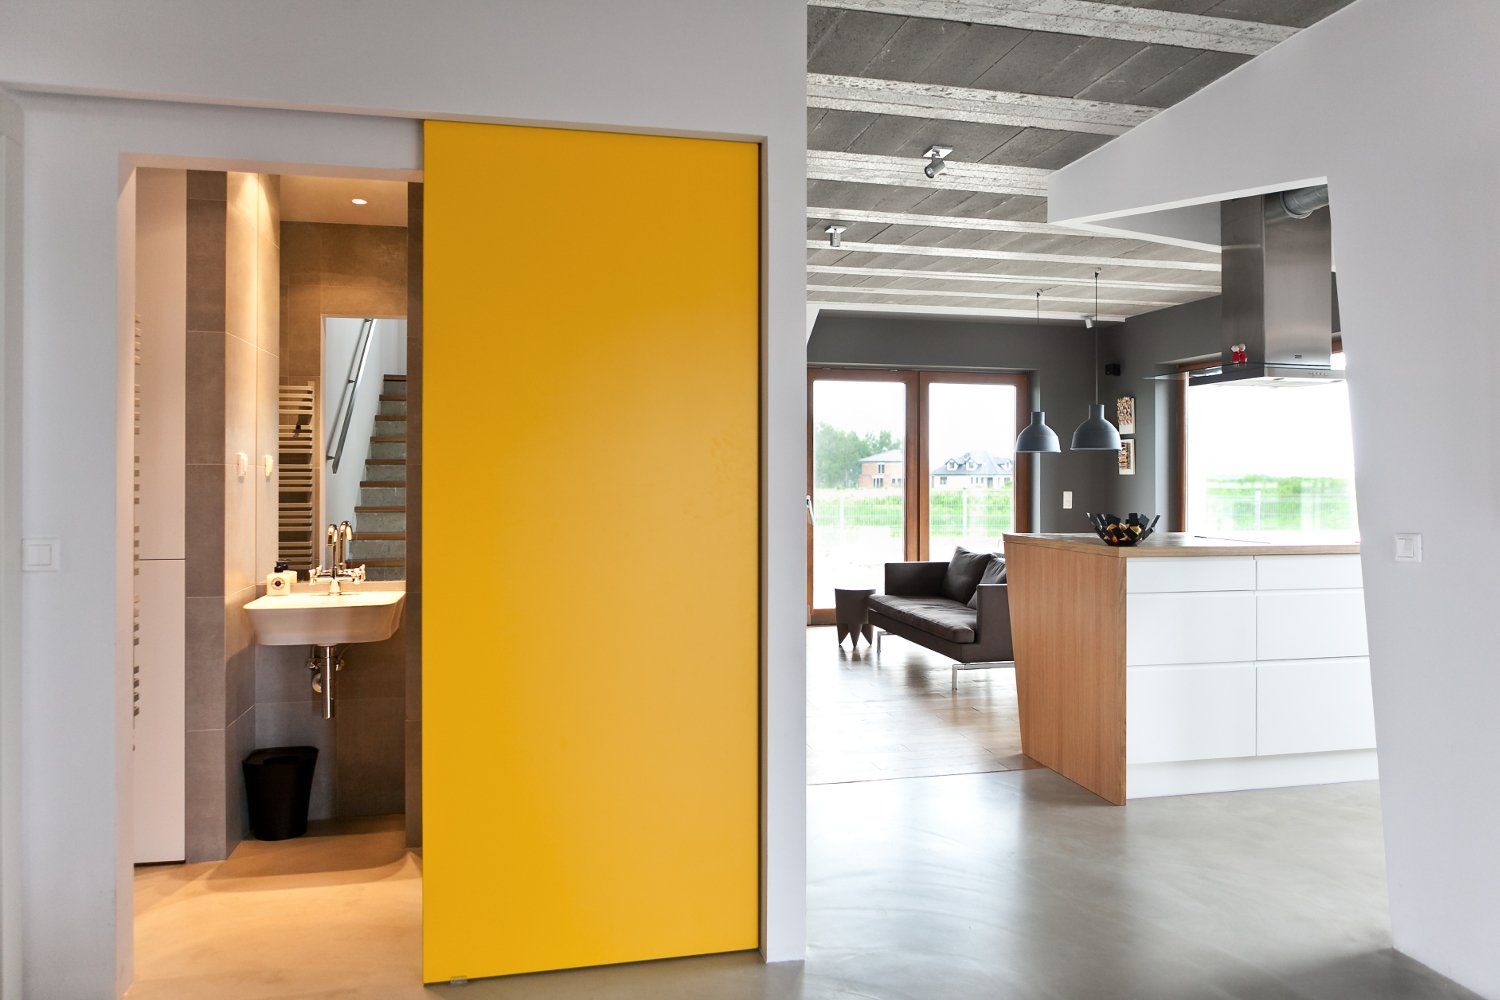 Kitchen, White Cabinet, and Wood Counter Canary yellow doors keep the house from feeling austere. The sliding function also saves space.  Photo 25 of 25 in 25 Bold Ways to Decorate with Yellow from How to Decorate With Yellow (Without the Smiley-Face Connotations)